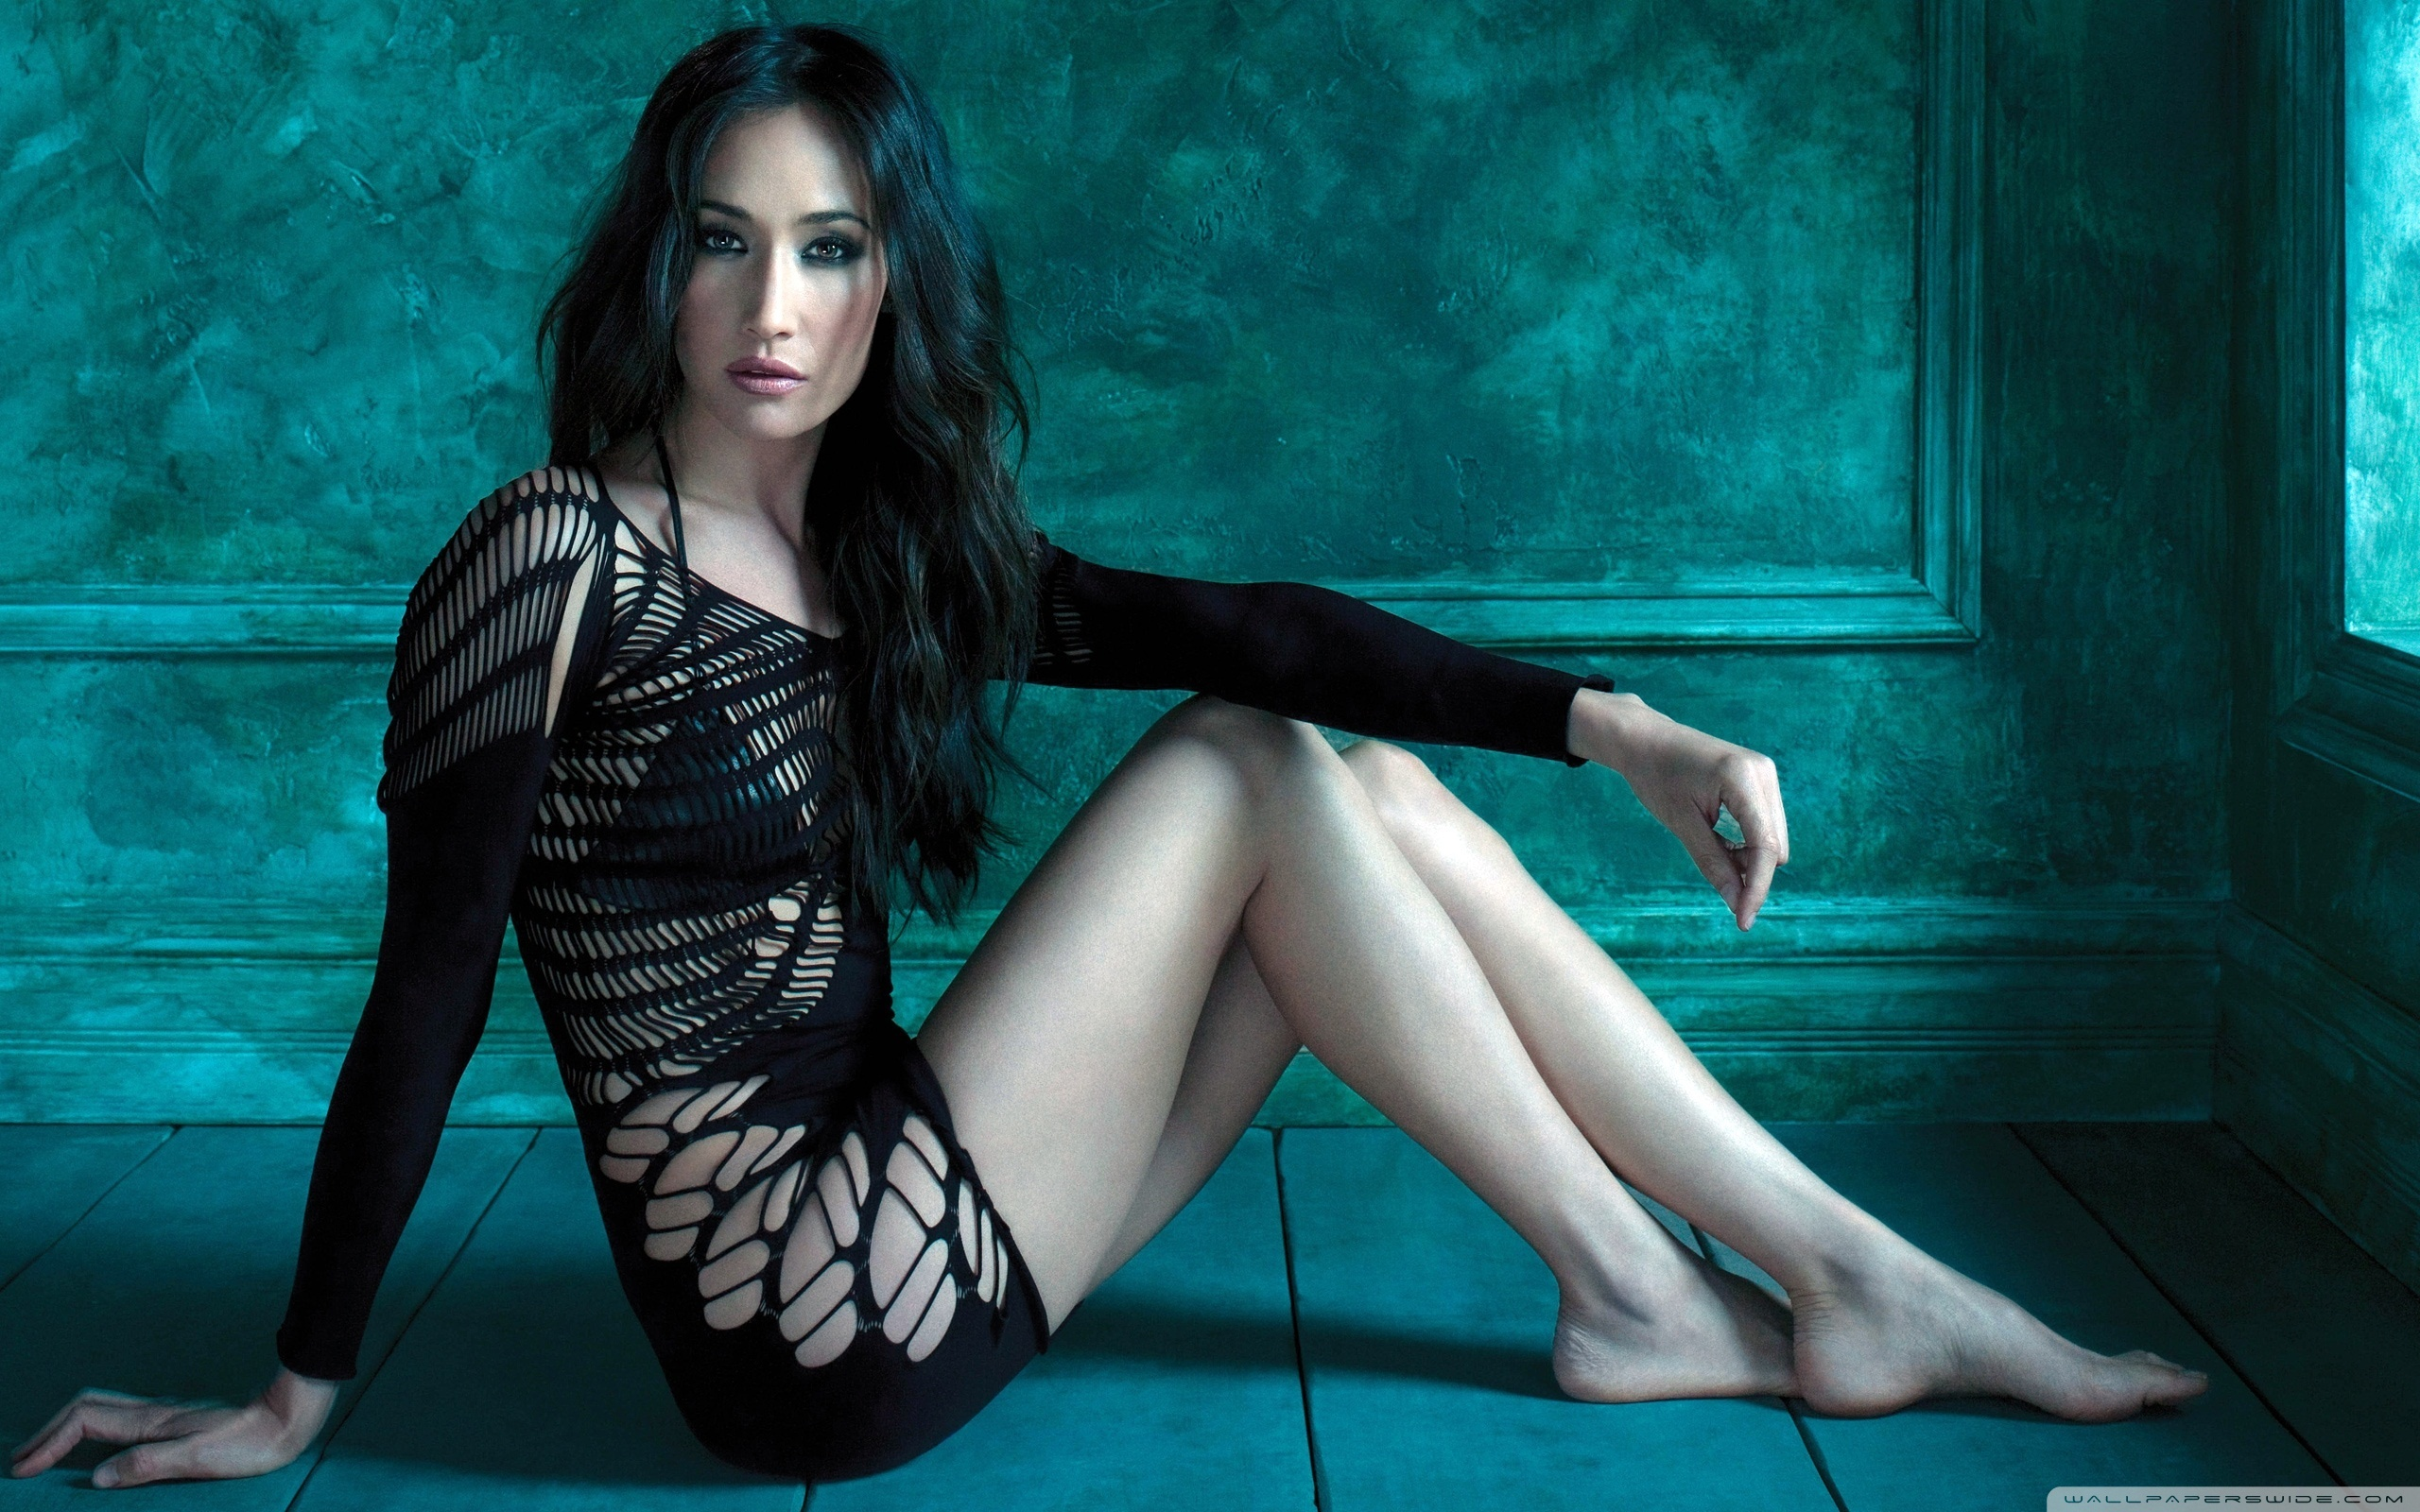 2560x1600 - Maggie Q Wallpapers 12